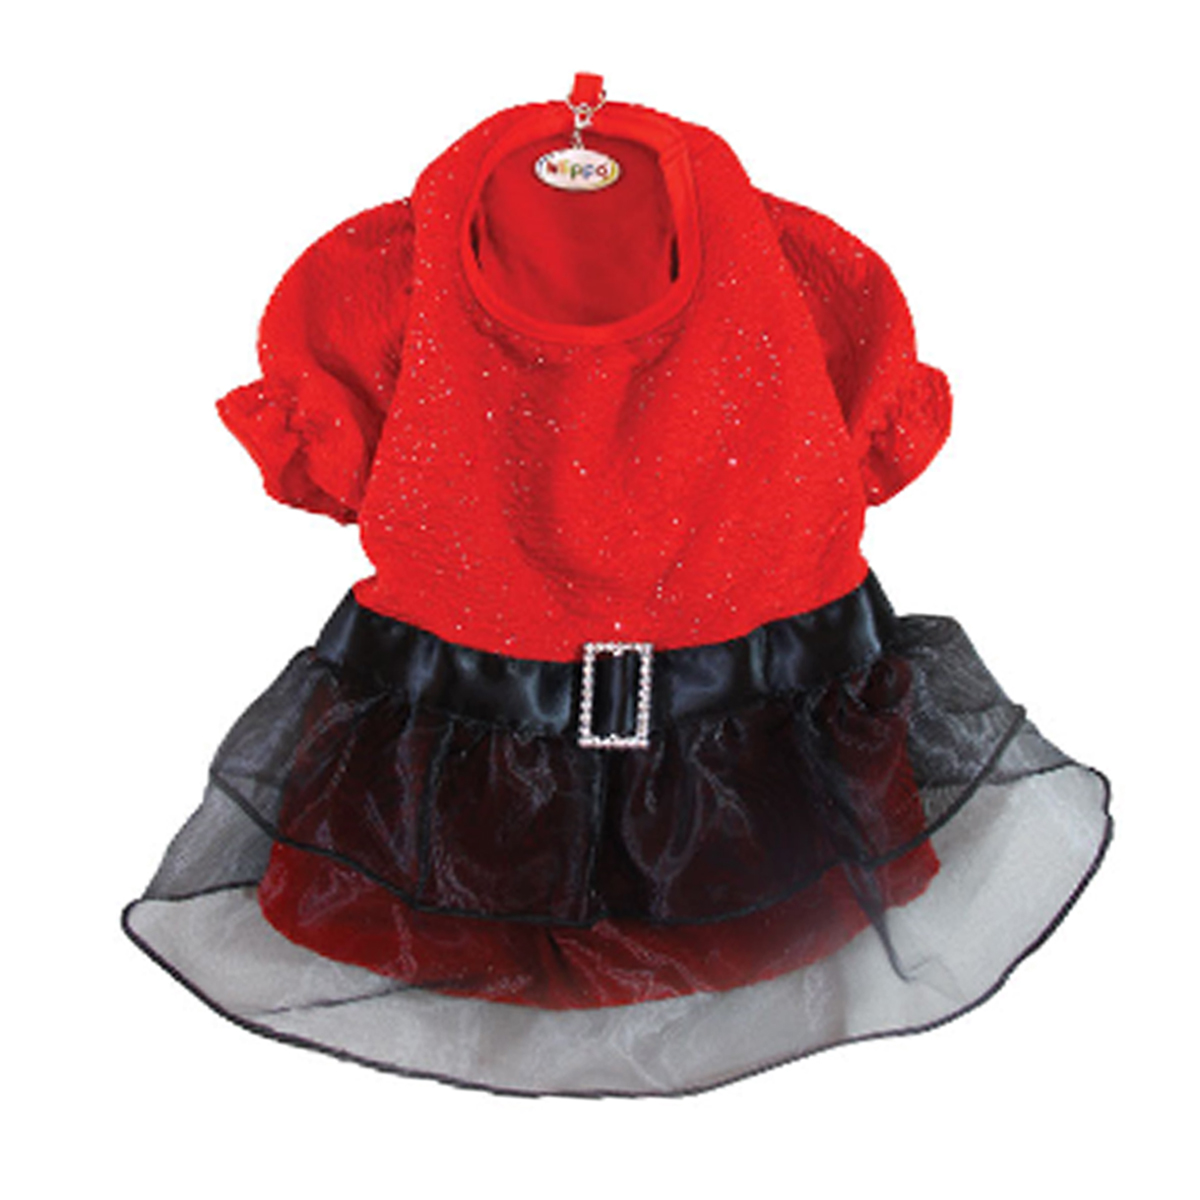 Sparkling Red Dog Dress with Puffy Sleeves by Klippo